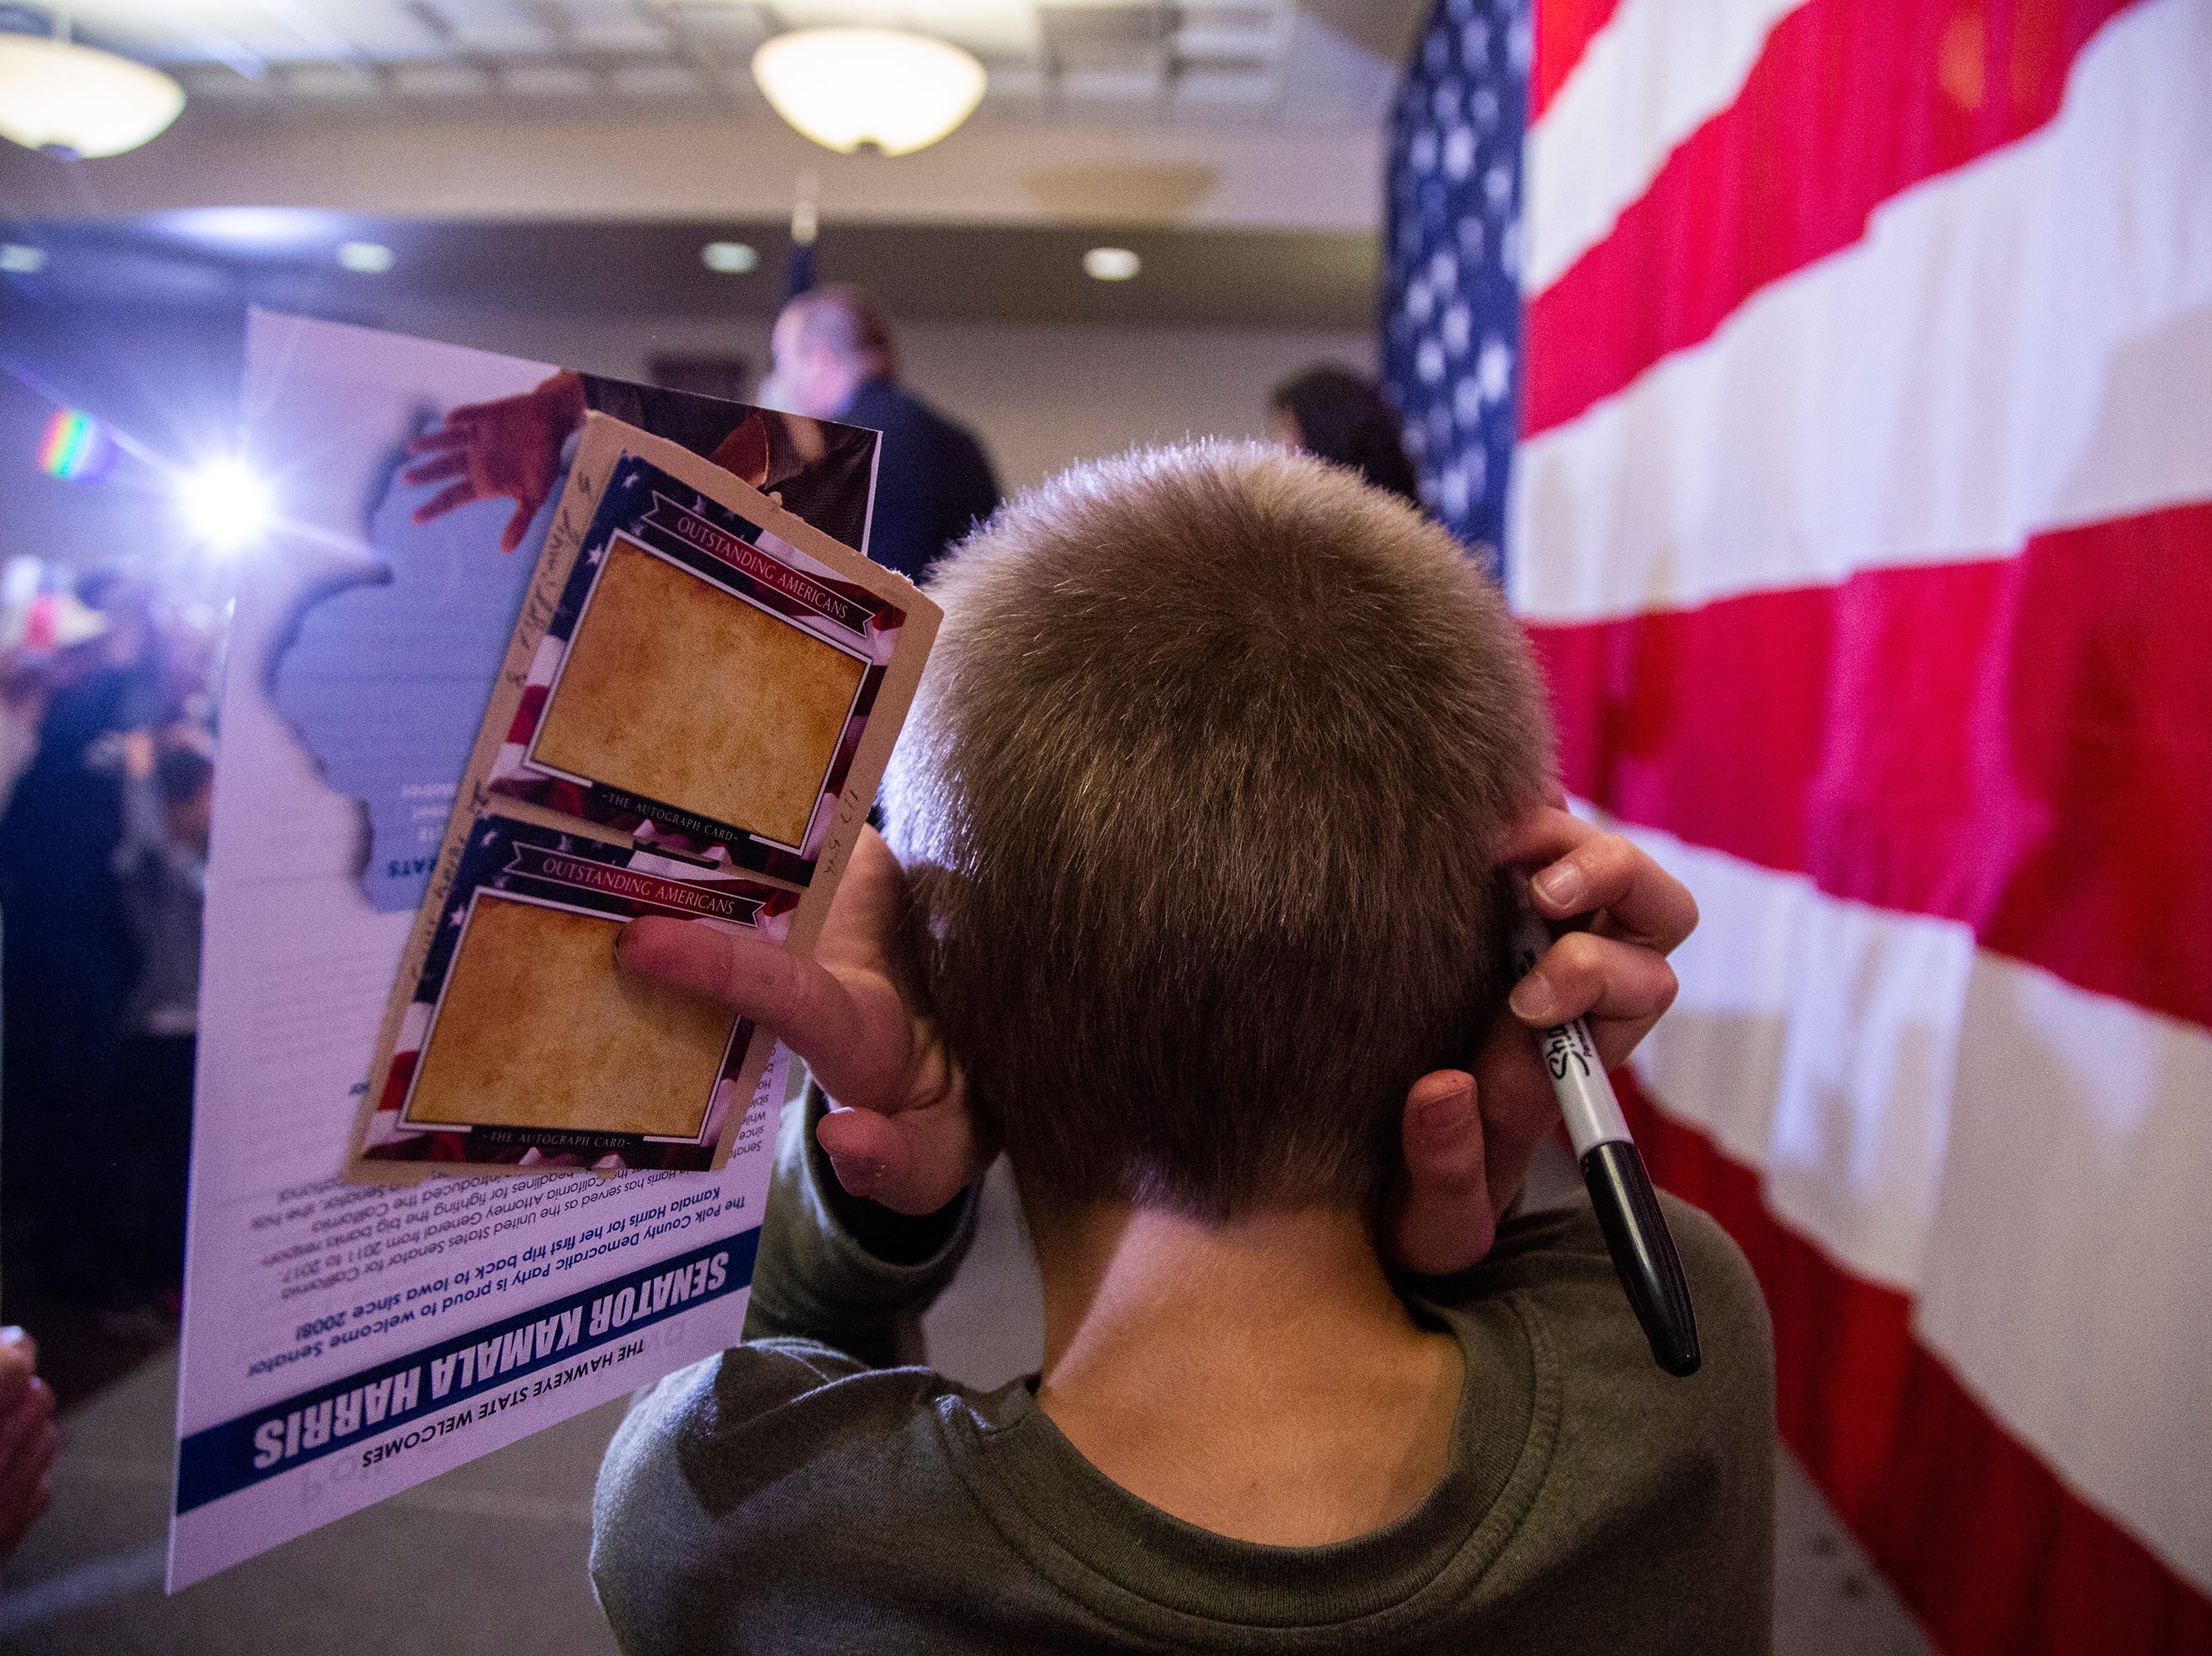 A young boy covers his ears as the crowd cheers for Kamala Harris, a Democrat Senator from California, during a rally with Polk County Democrats on Monday, Oct. 22, 2018, in Des Moines.